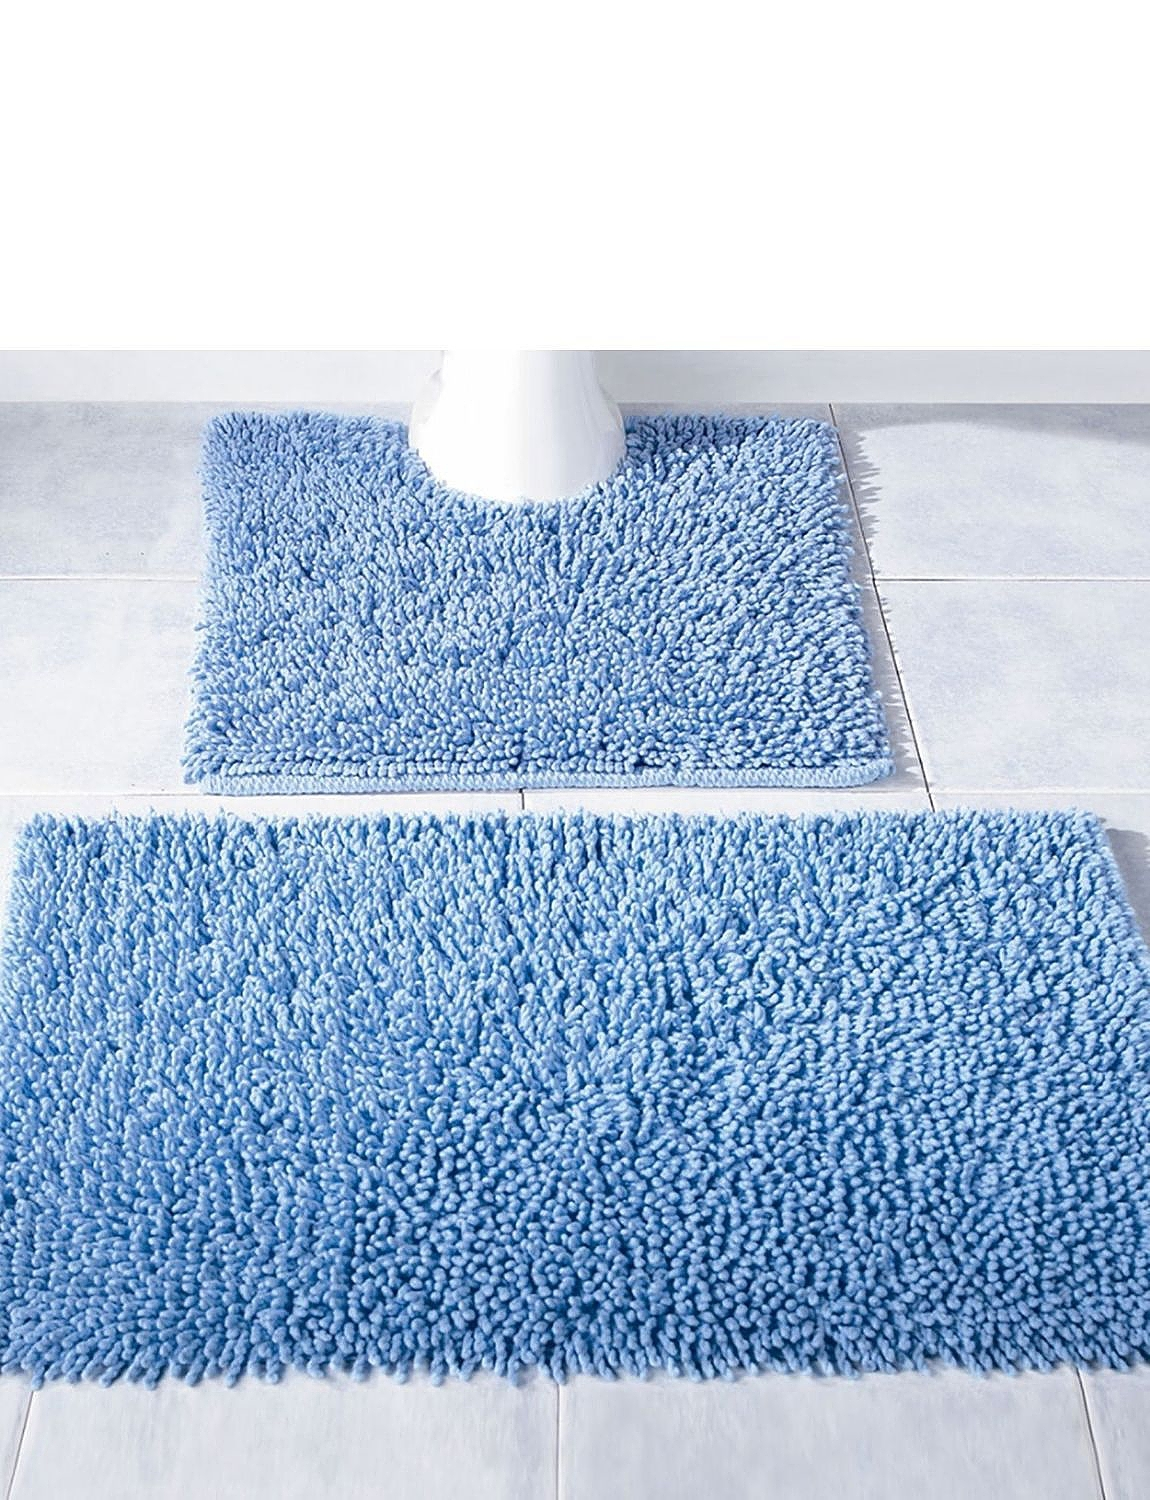 The Range Bath And Pedestal Mats